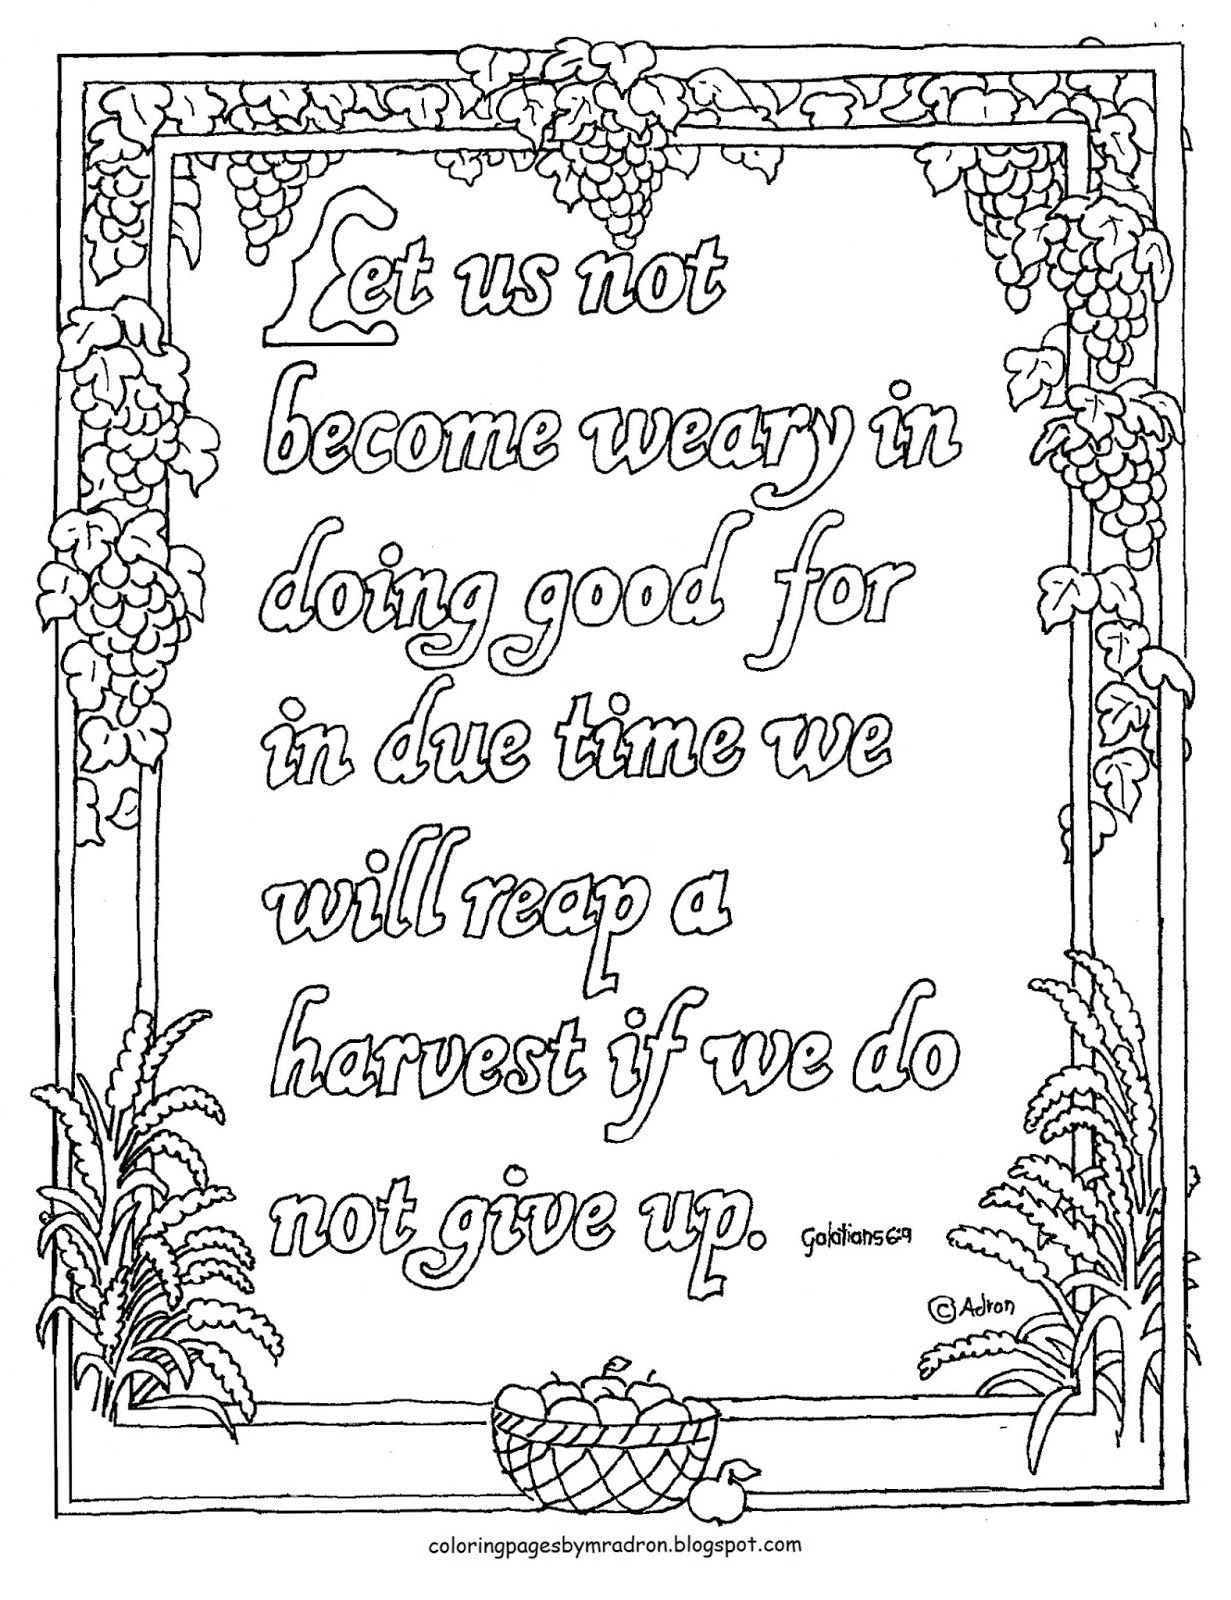 Coloring pages for 9 and up - Coloring Pages For Kids By Mr Adron Free Printable Galatians 6 9